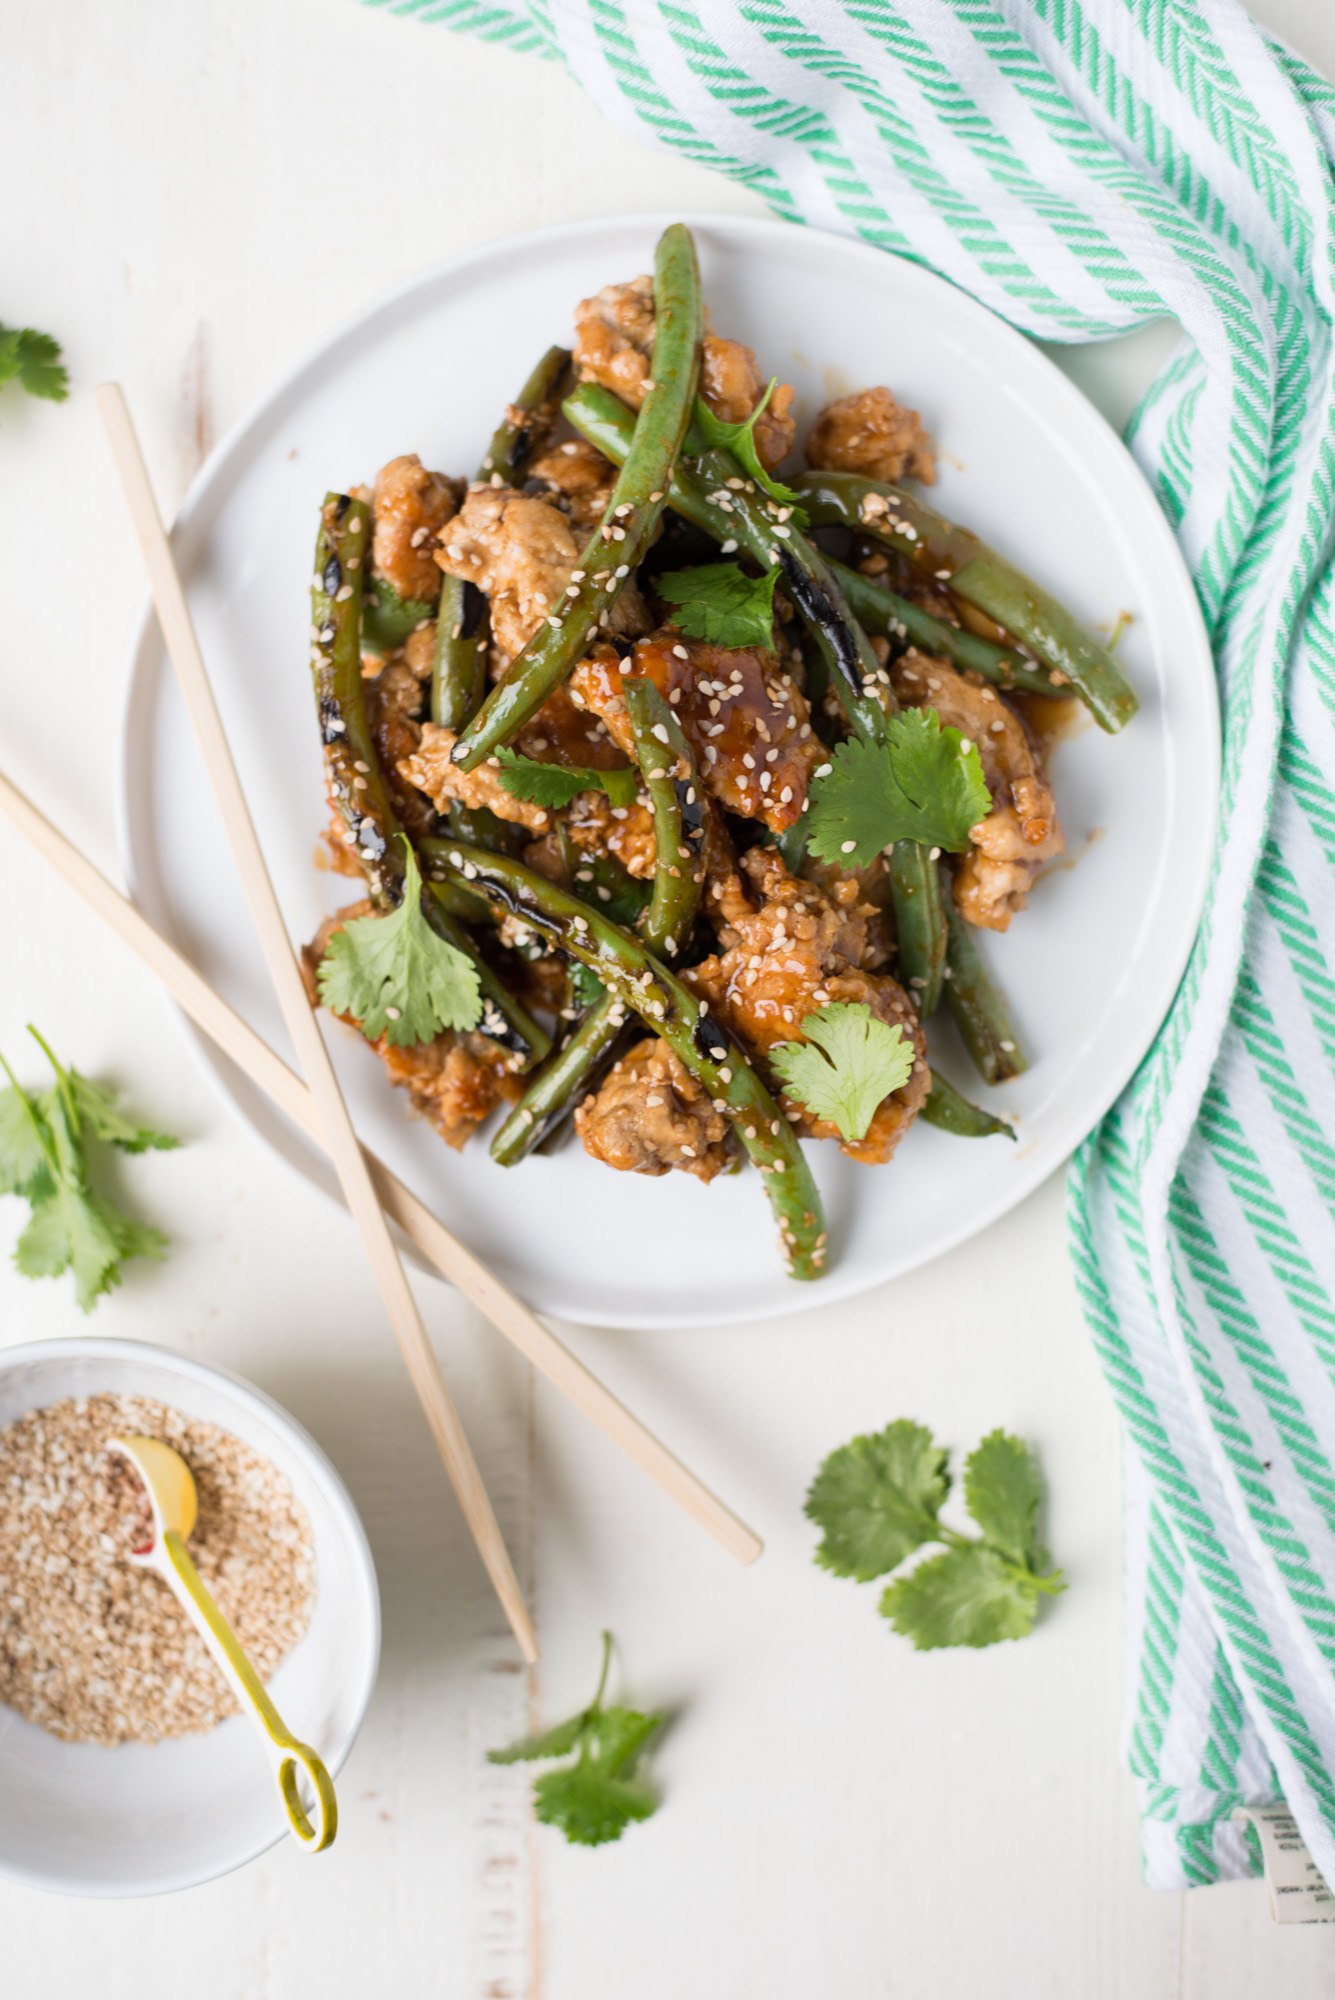 One pan and a few minutes are all you need to whip up this easy, tasty 20-Minute Turkey and Green Bean Stir-Fry.